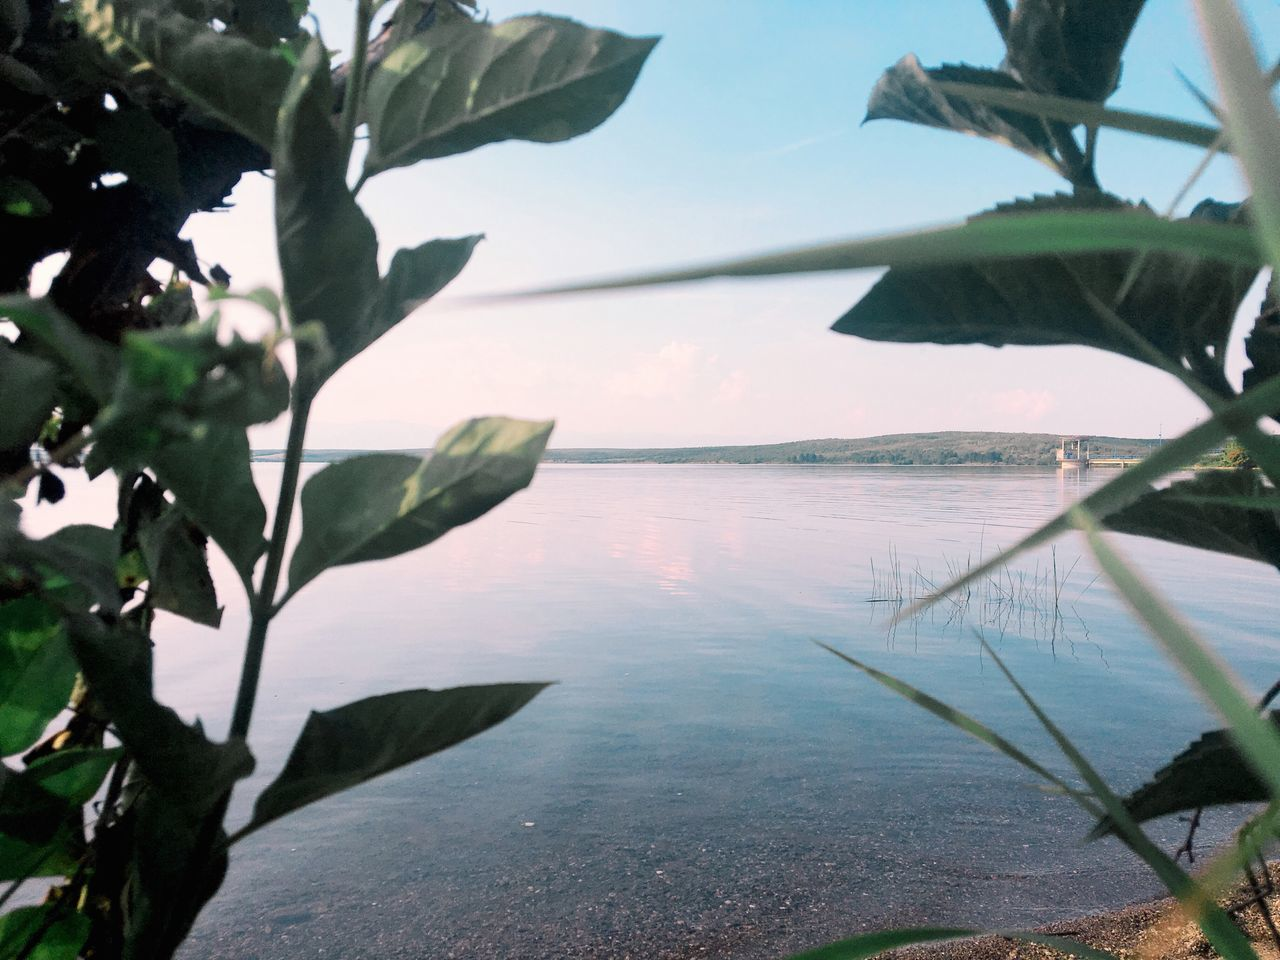 EyeEmNewHere Water Sea Nature Scenics Beauty In Nature Tranquil Scene Tranquility Leaf Sky No People Plant Outdoors Day Tree Close-up